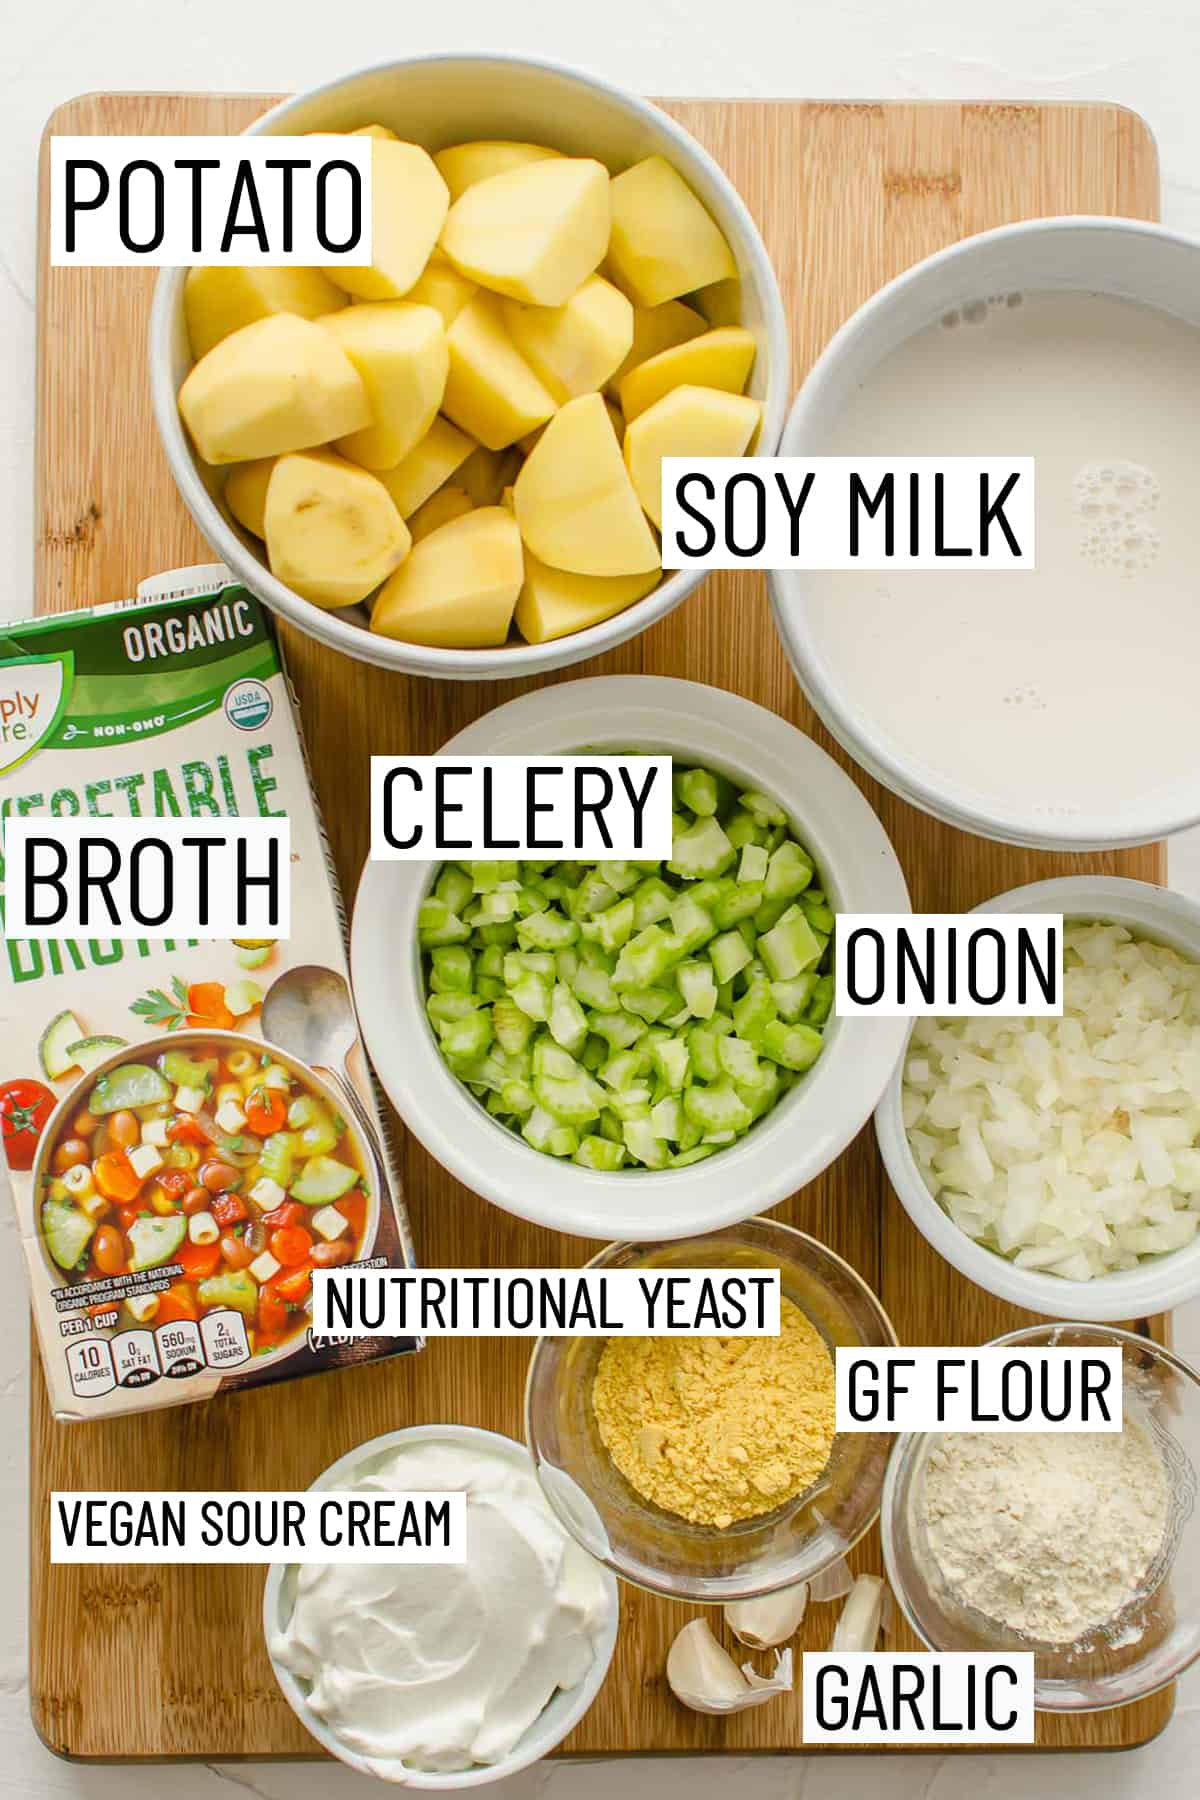 Flat lay image of portioned ingredients for potato soup including nutritional yeast, flour, sour cream, garlic, onion, celery, broth, soy milk, and potato.